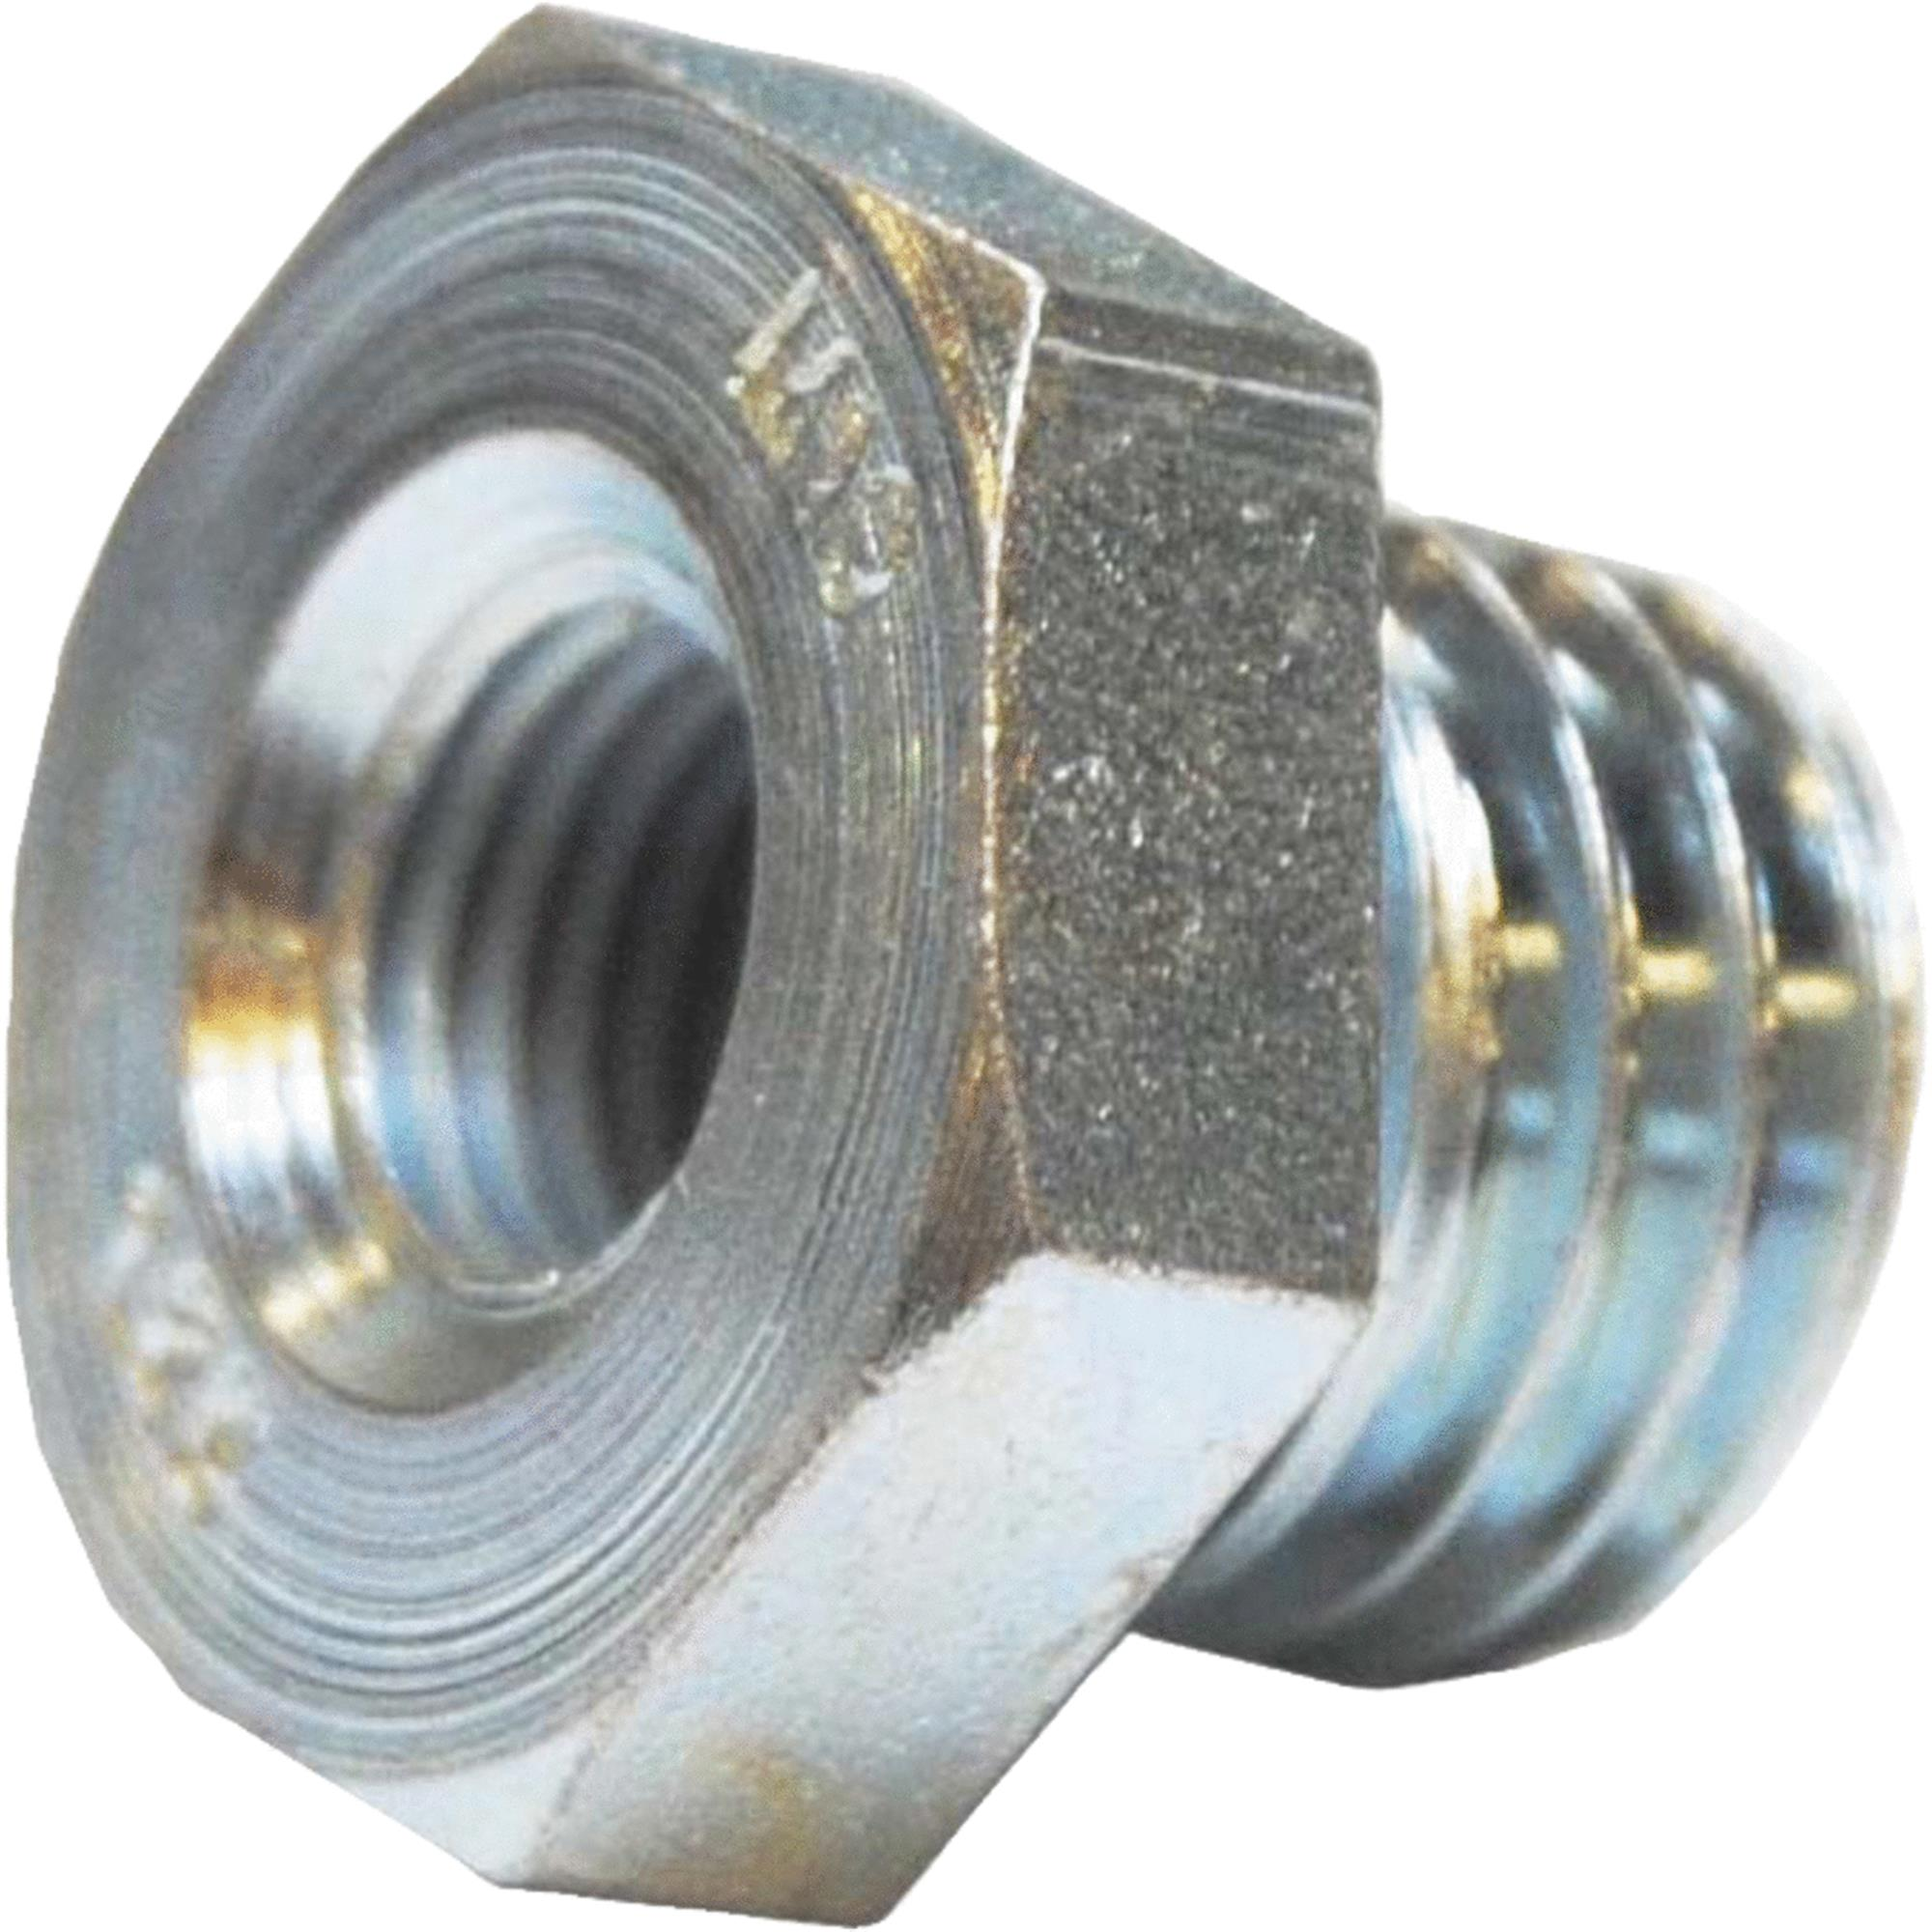 PRICE is per EACH Use With Vortec Pro Crimped Wire Cup Brush 36053 Weiler Corporation Weiler 5//8-11 in to M10 x 1.5 Adapter